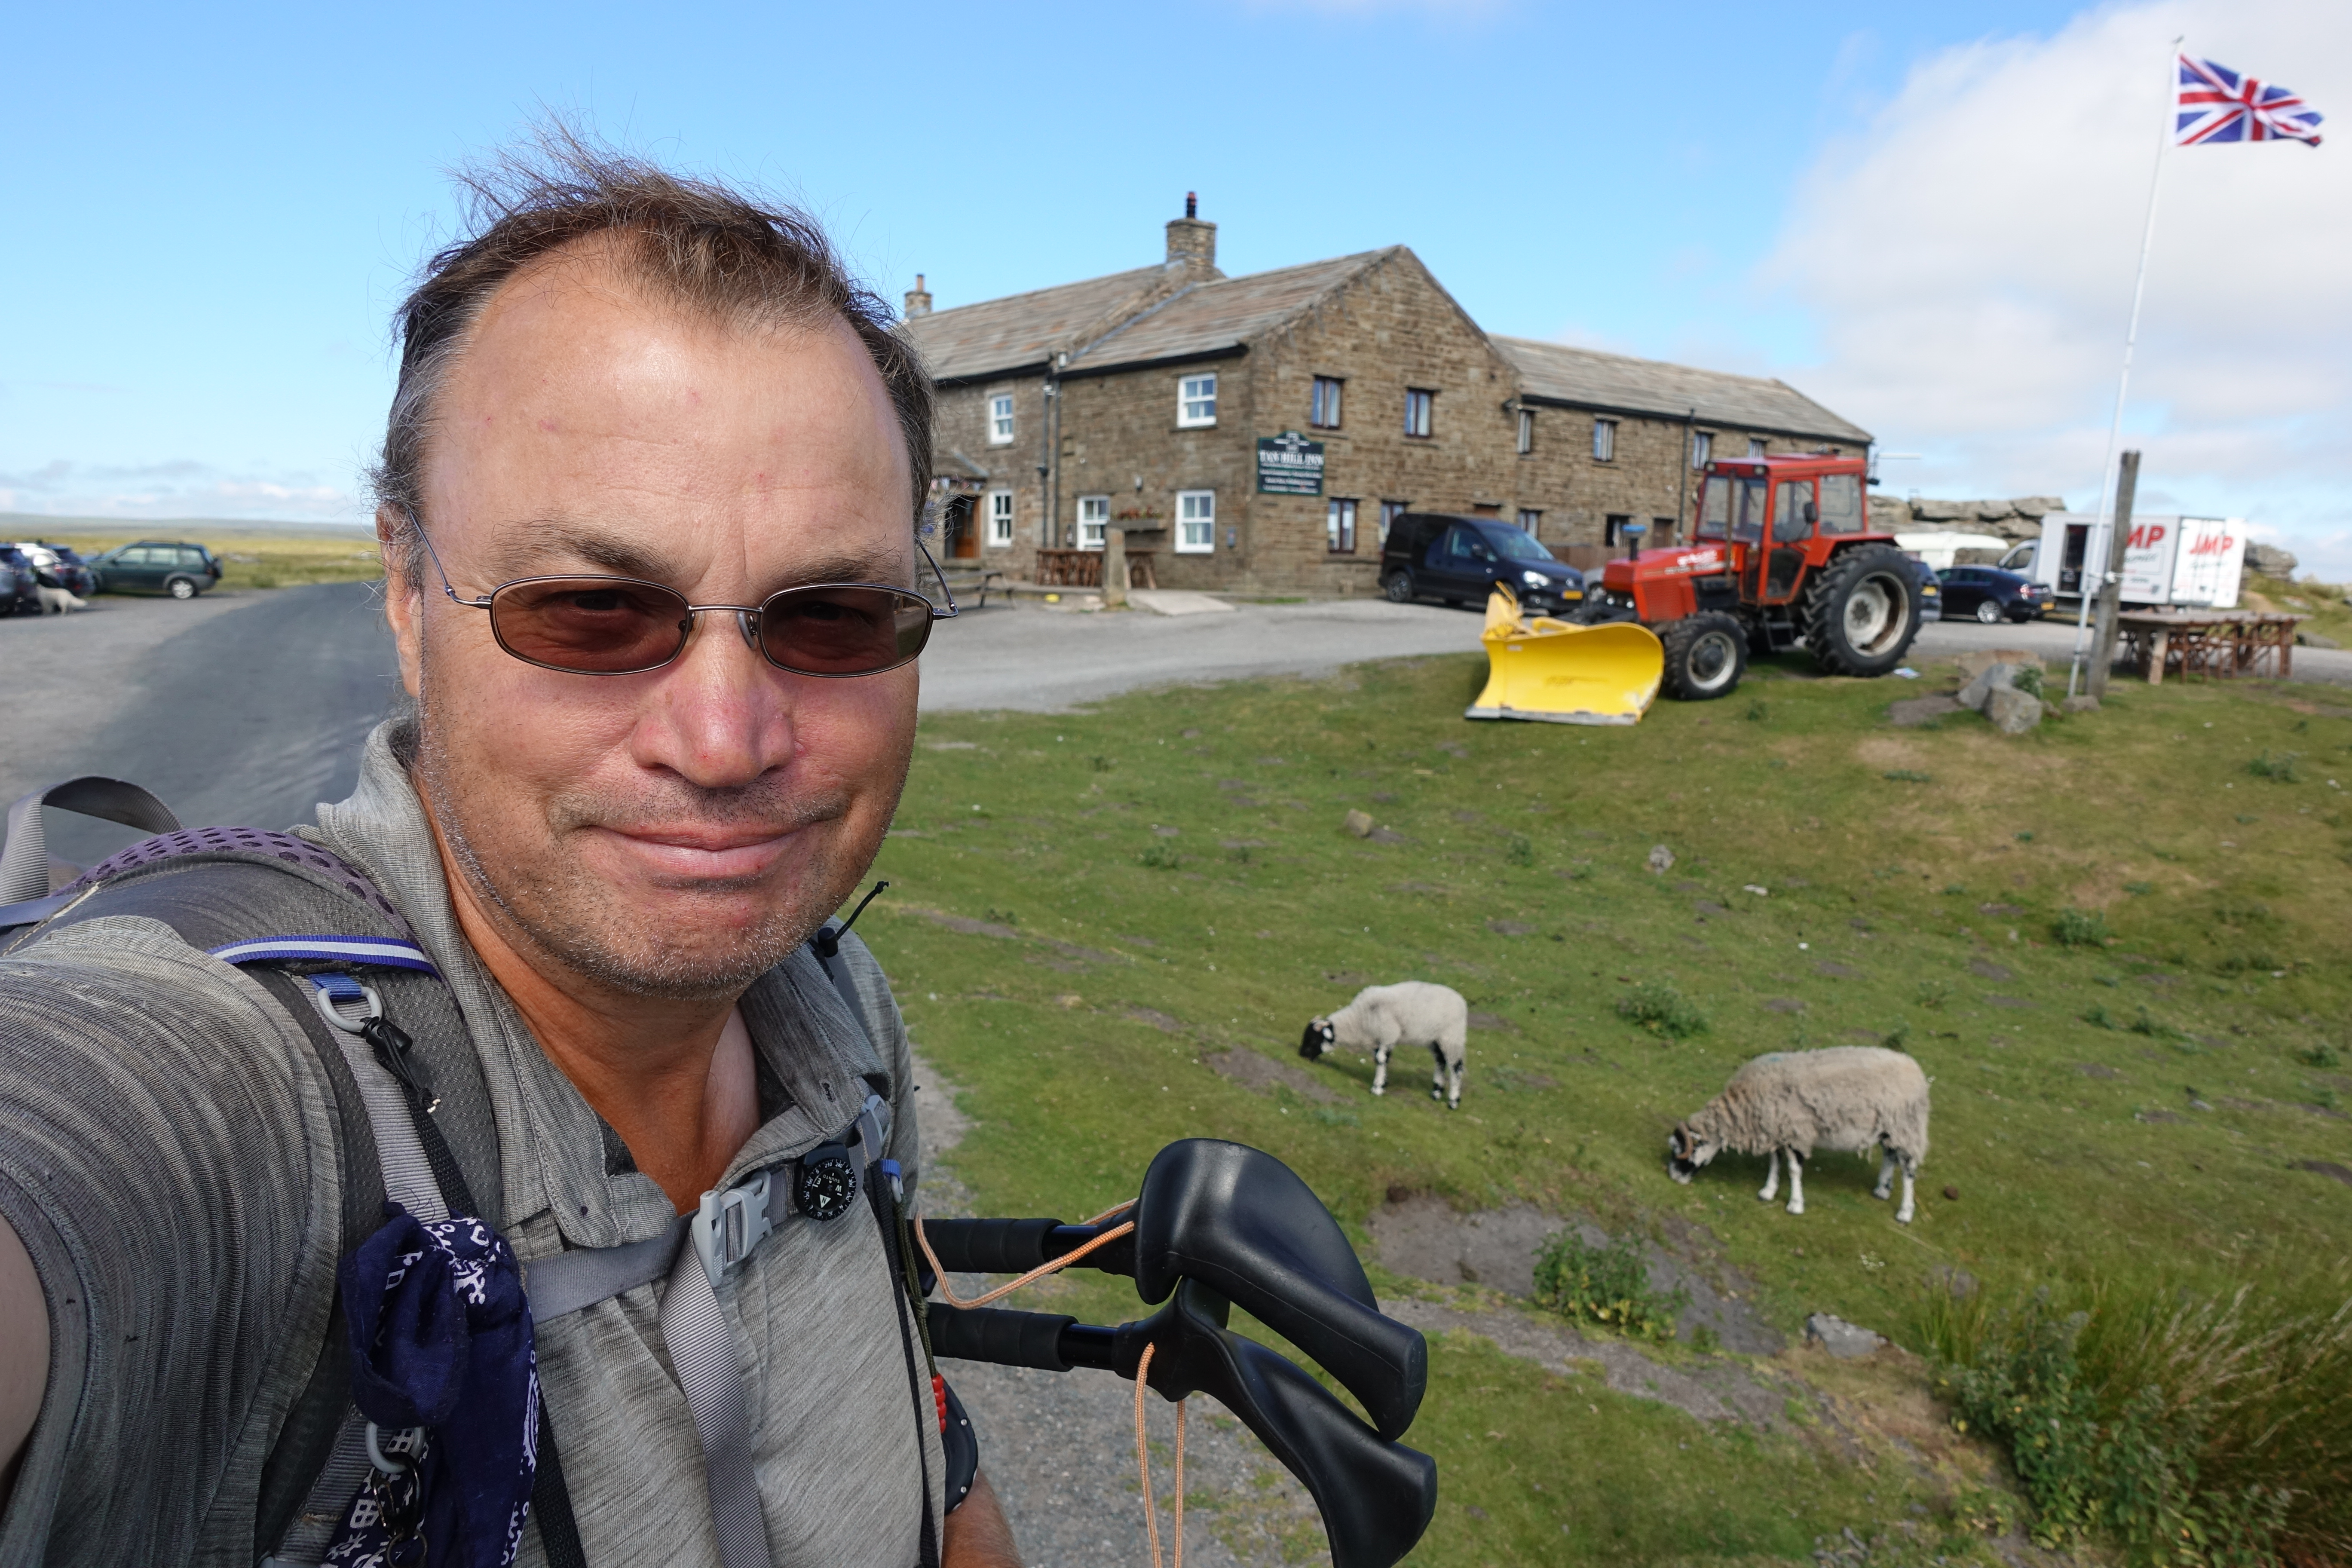 Beer and walking go hand in hand. England's highest pub, the Tan Hill Inn, lays in the Yorkshire Dales on the Pennine Way. An essential overnight halt